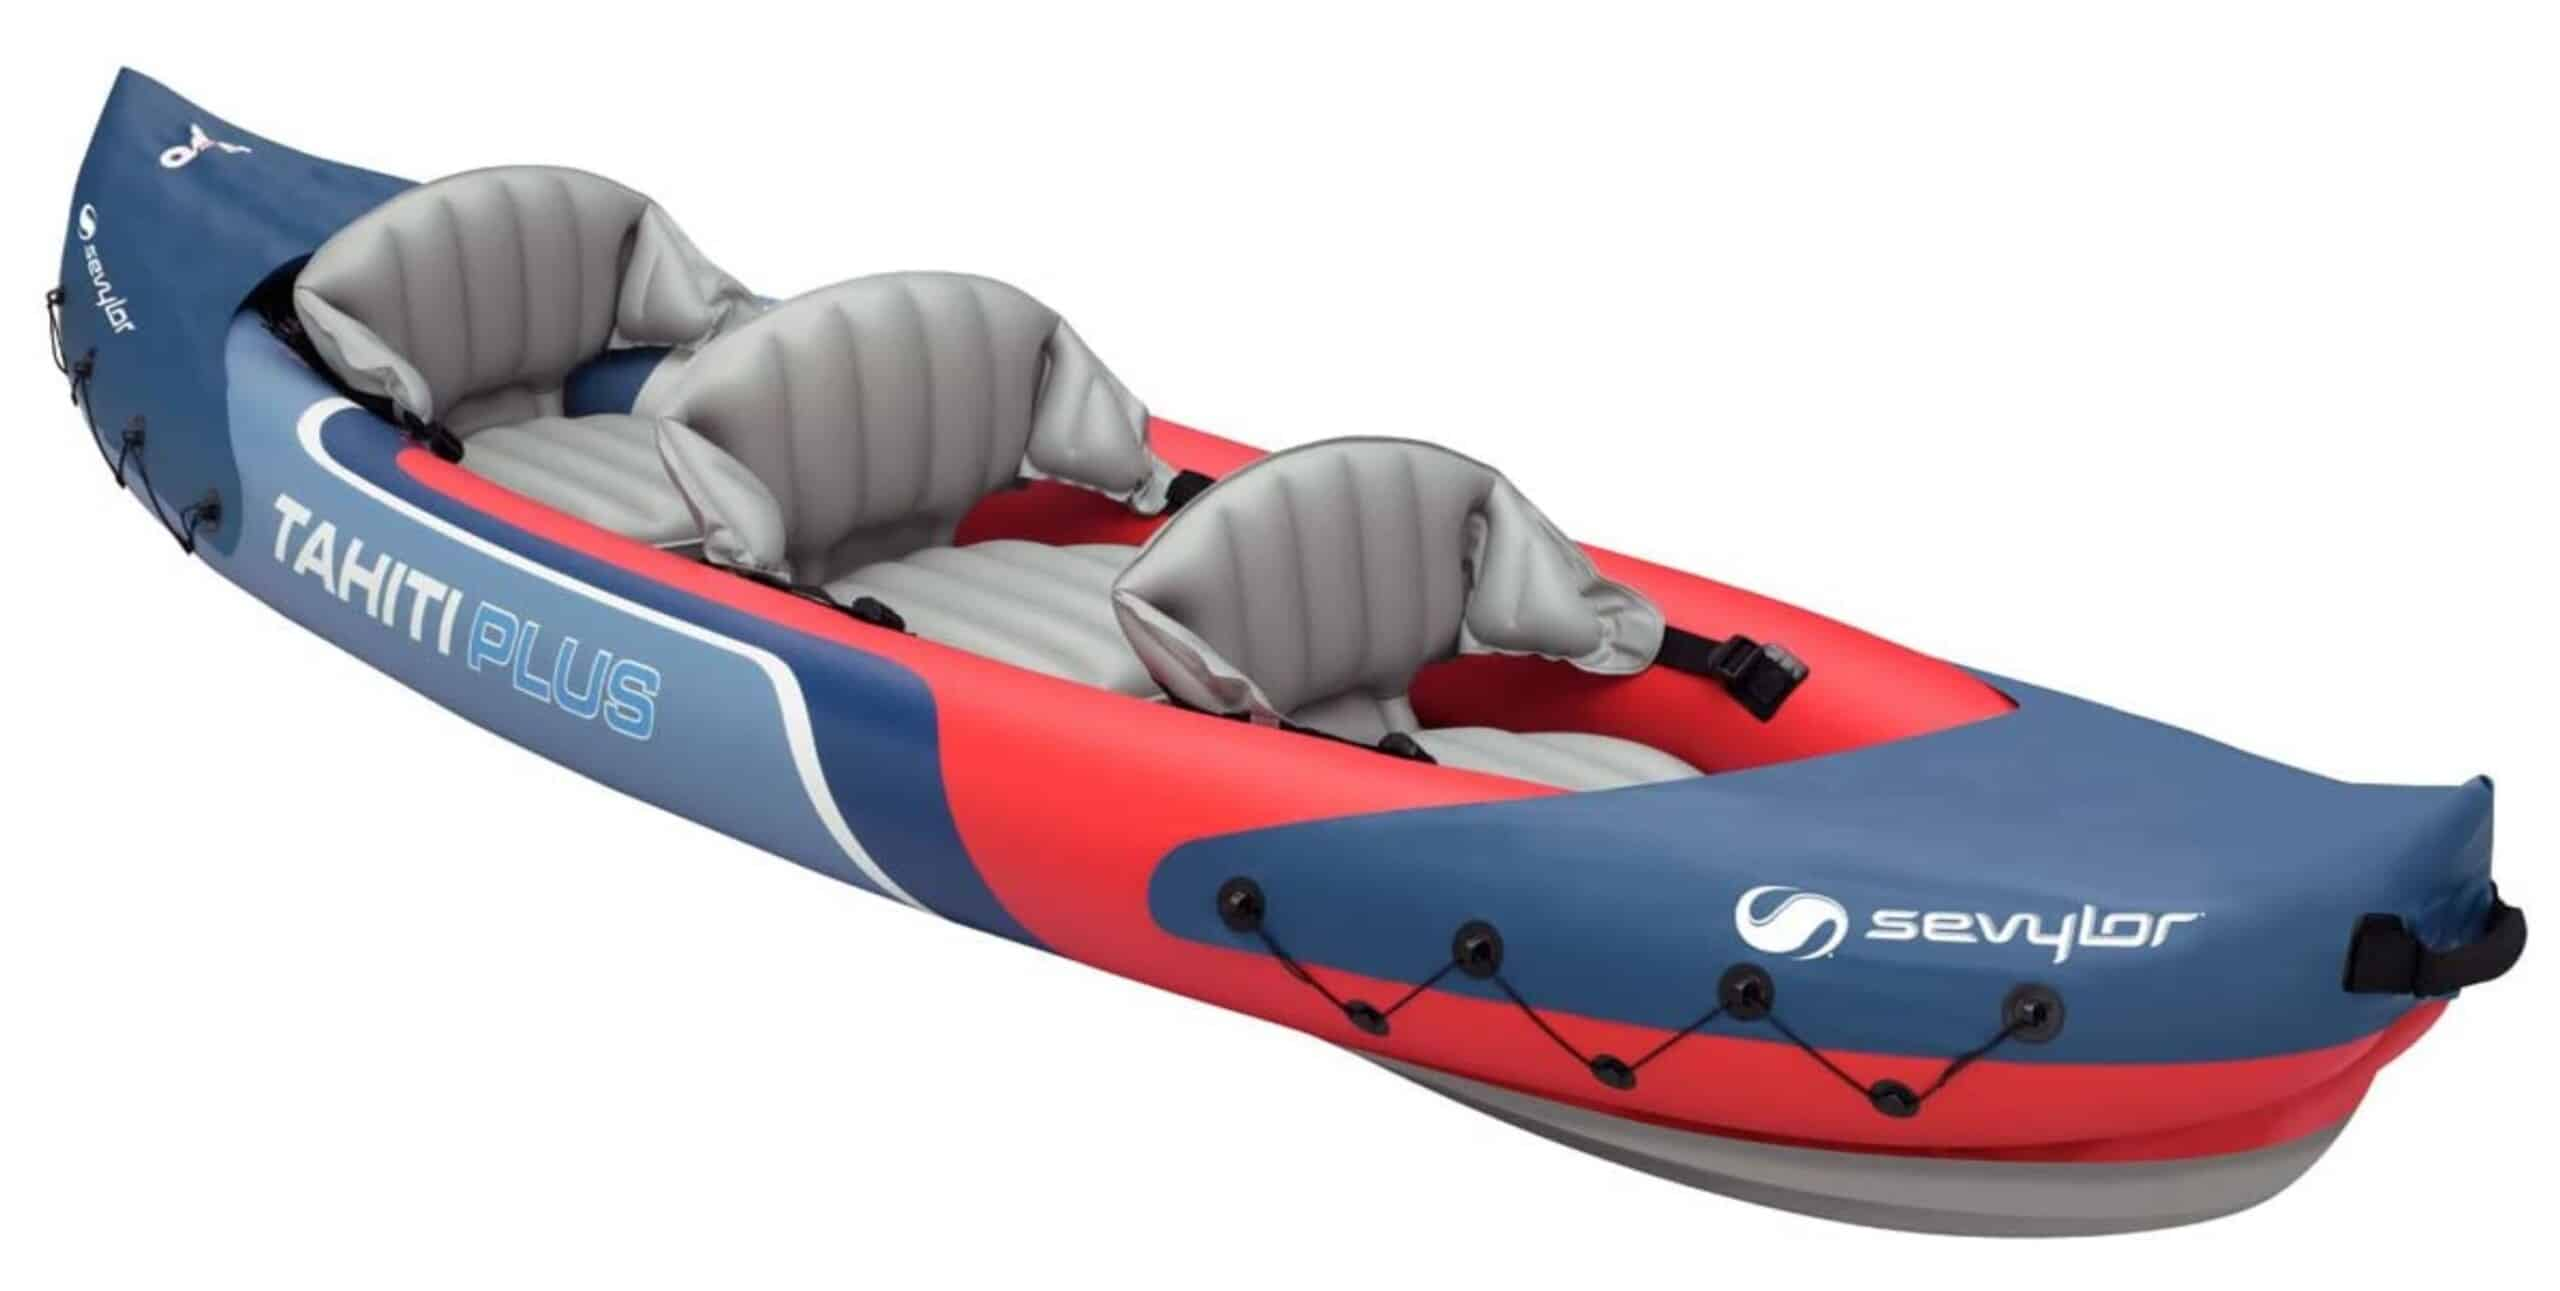 sevylor tahiti inflatable kayak 3 people